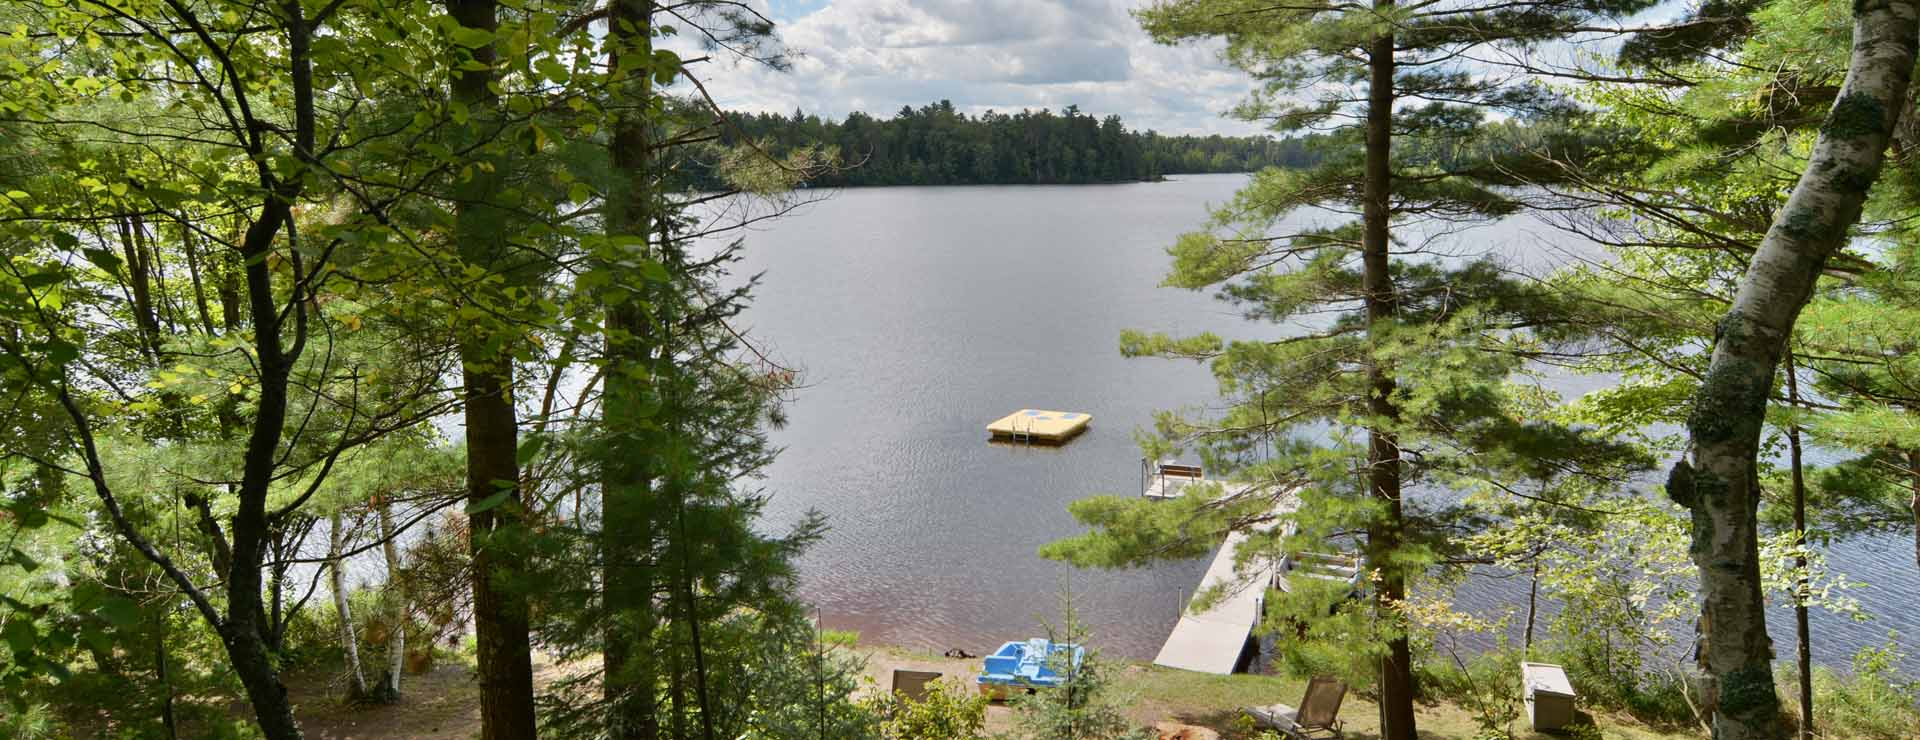 slide-lakeview-lower-clam-lake